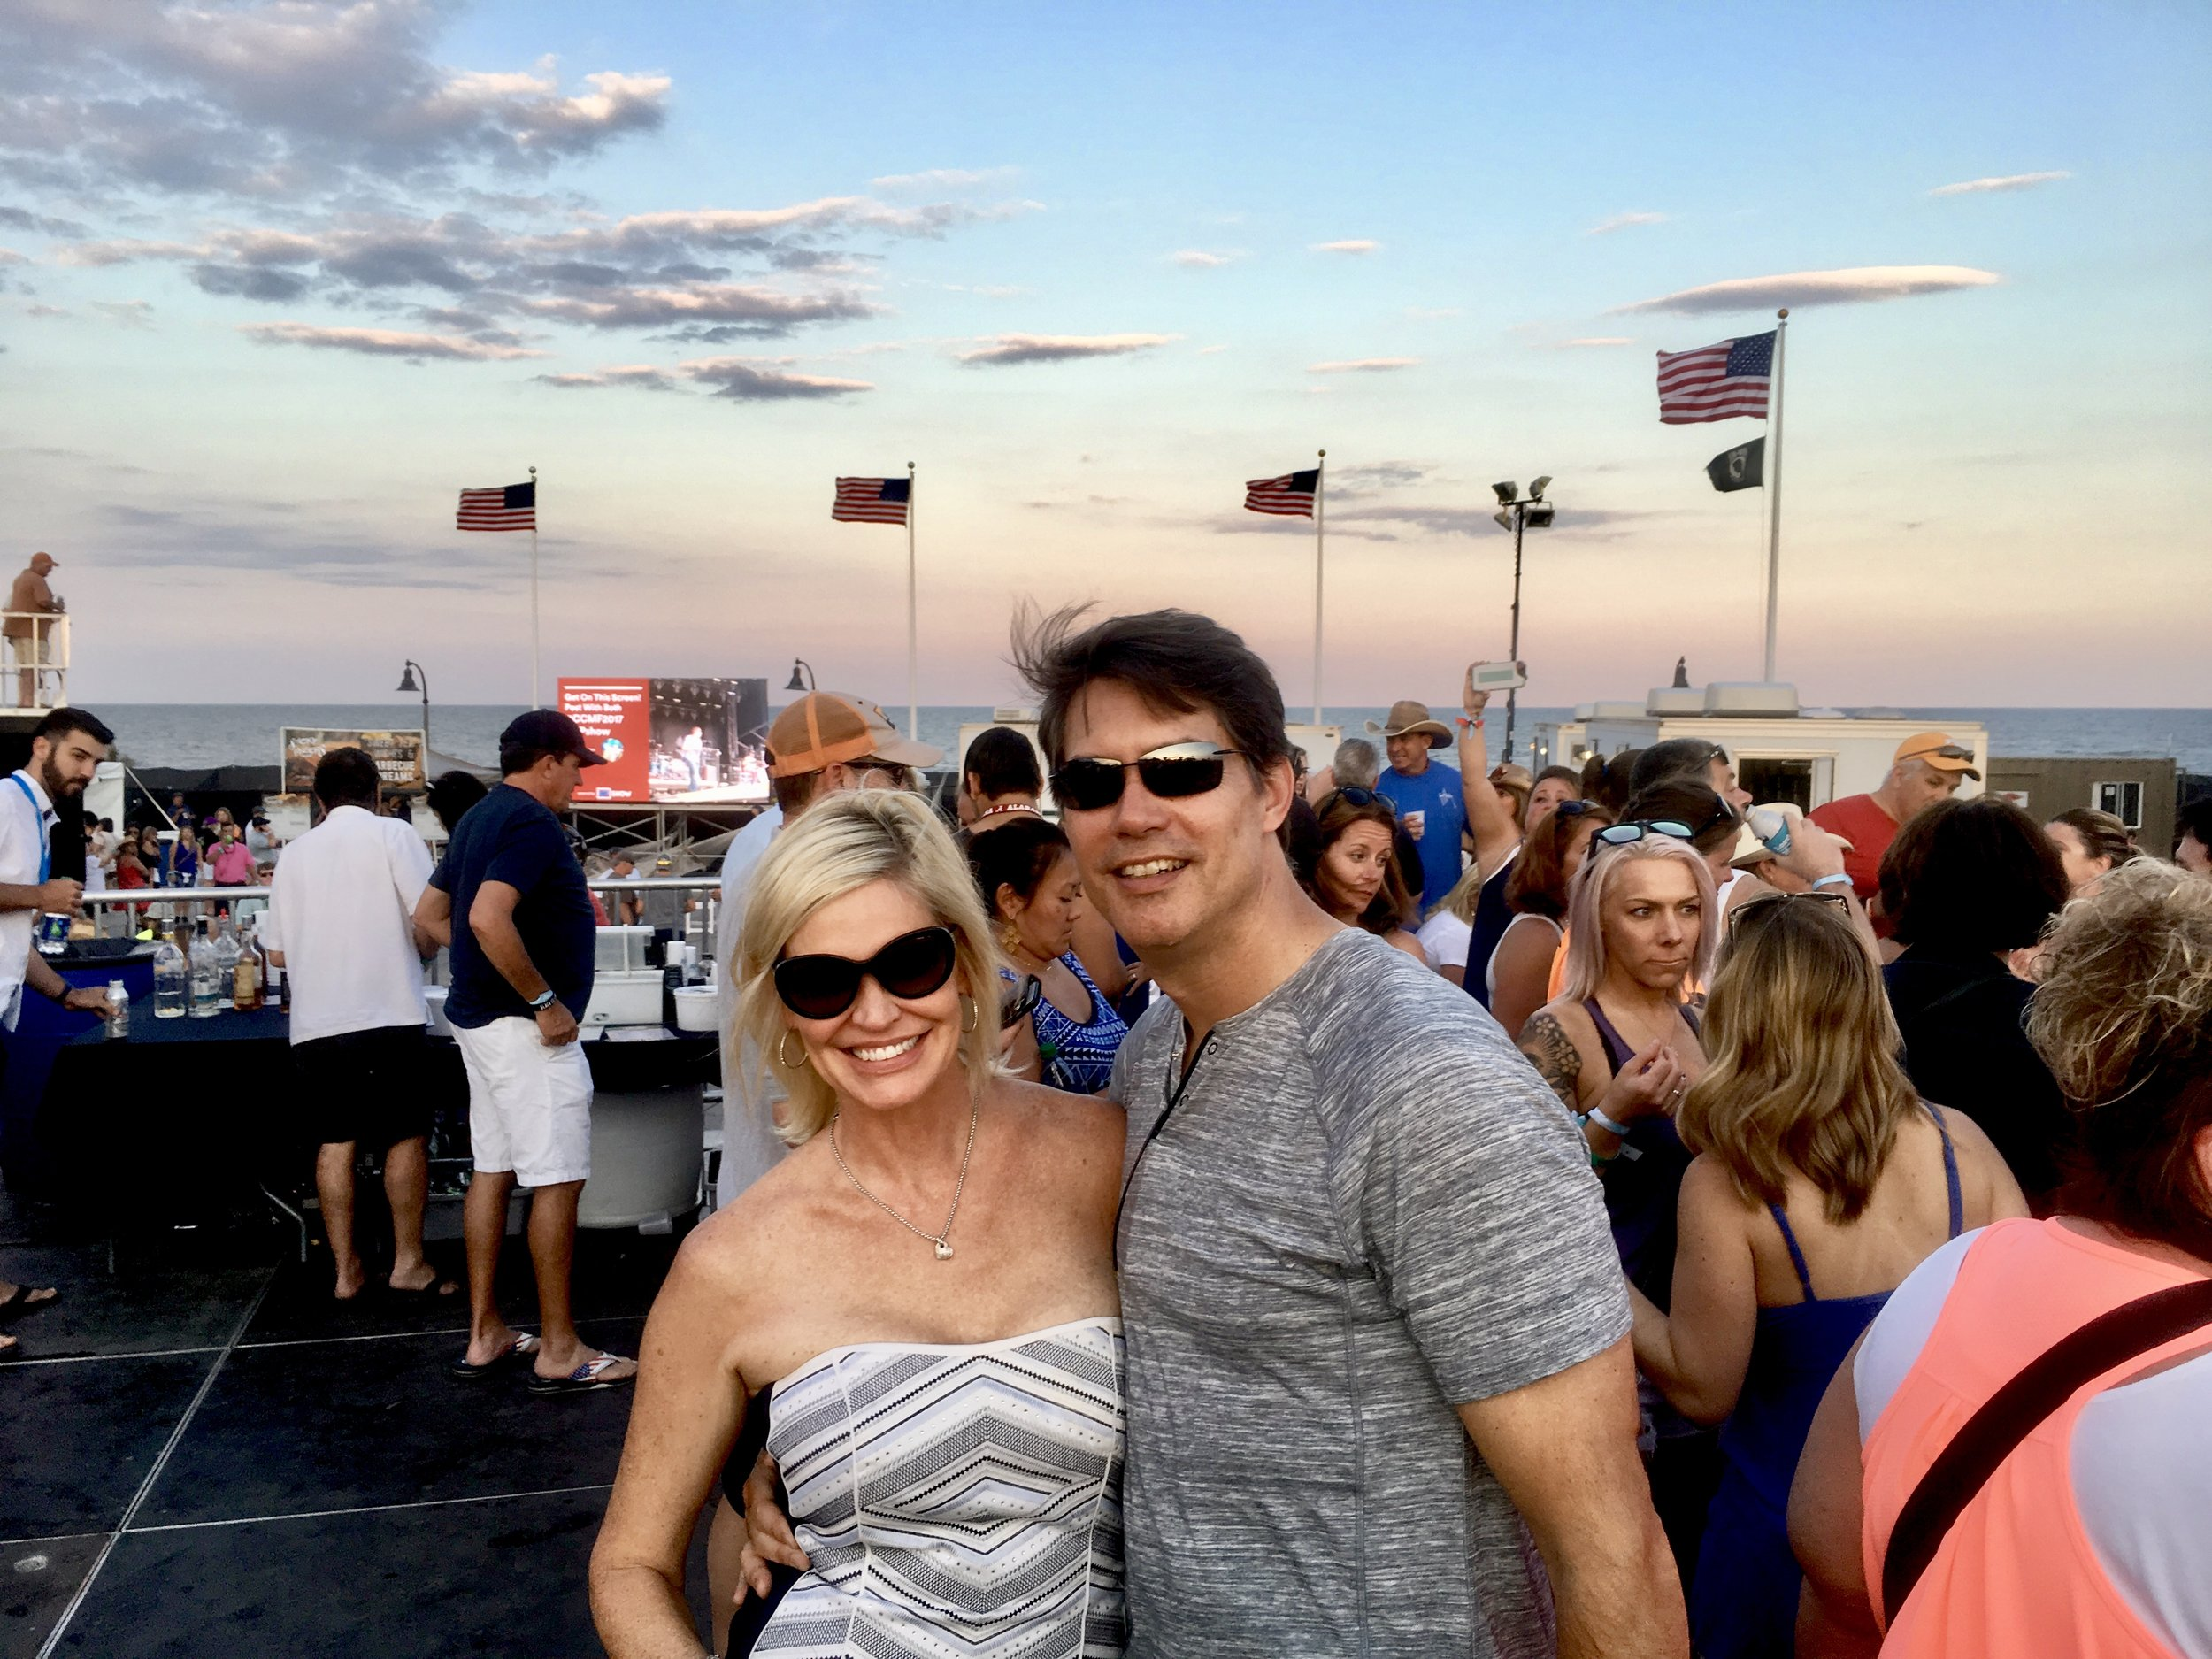 Allison and Scott Schult at Carolina Country Music Festival, Myrtle Beach, SC